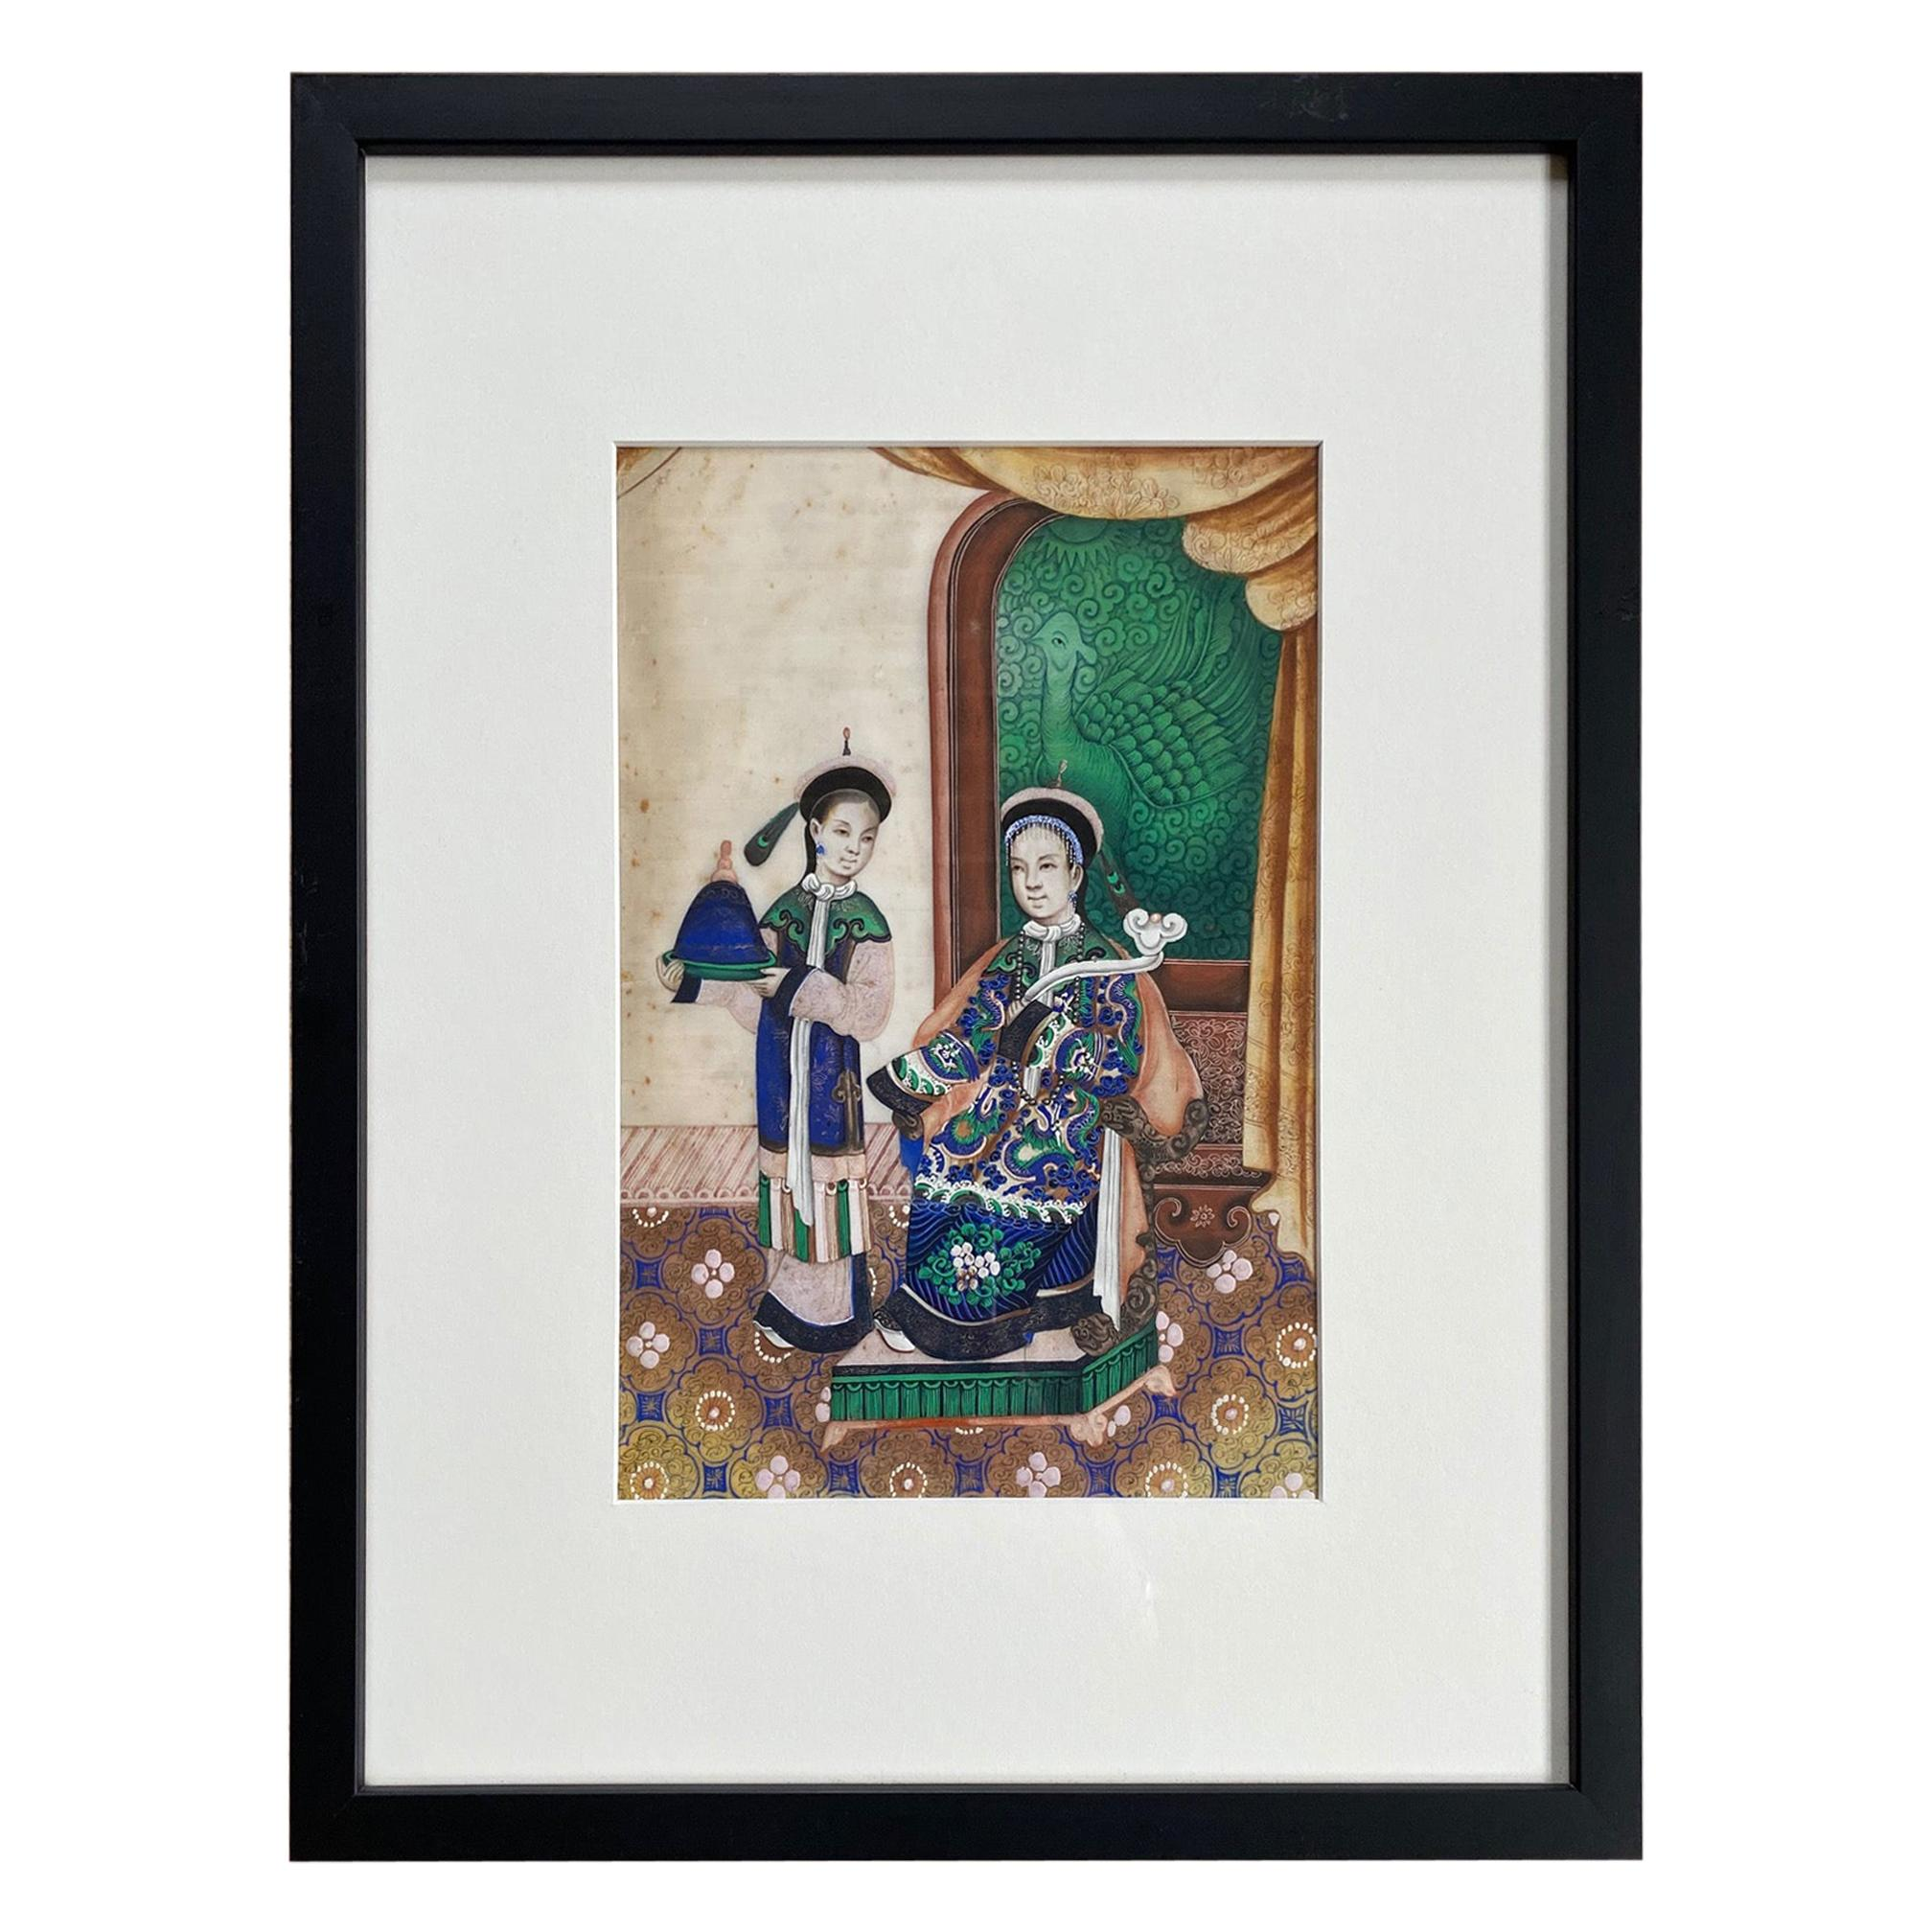 19th Century Chinese Export Pith Painting of Figures in an Interior